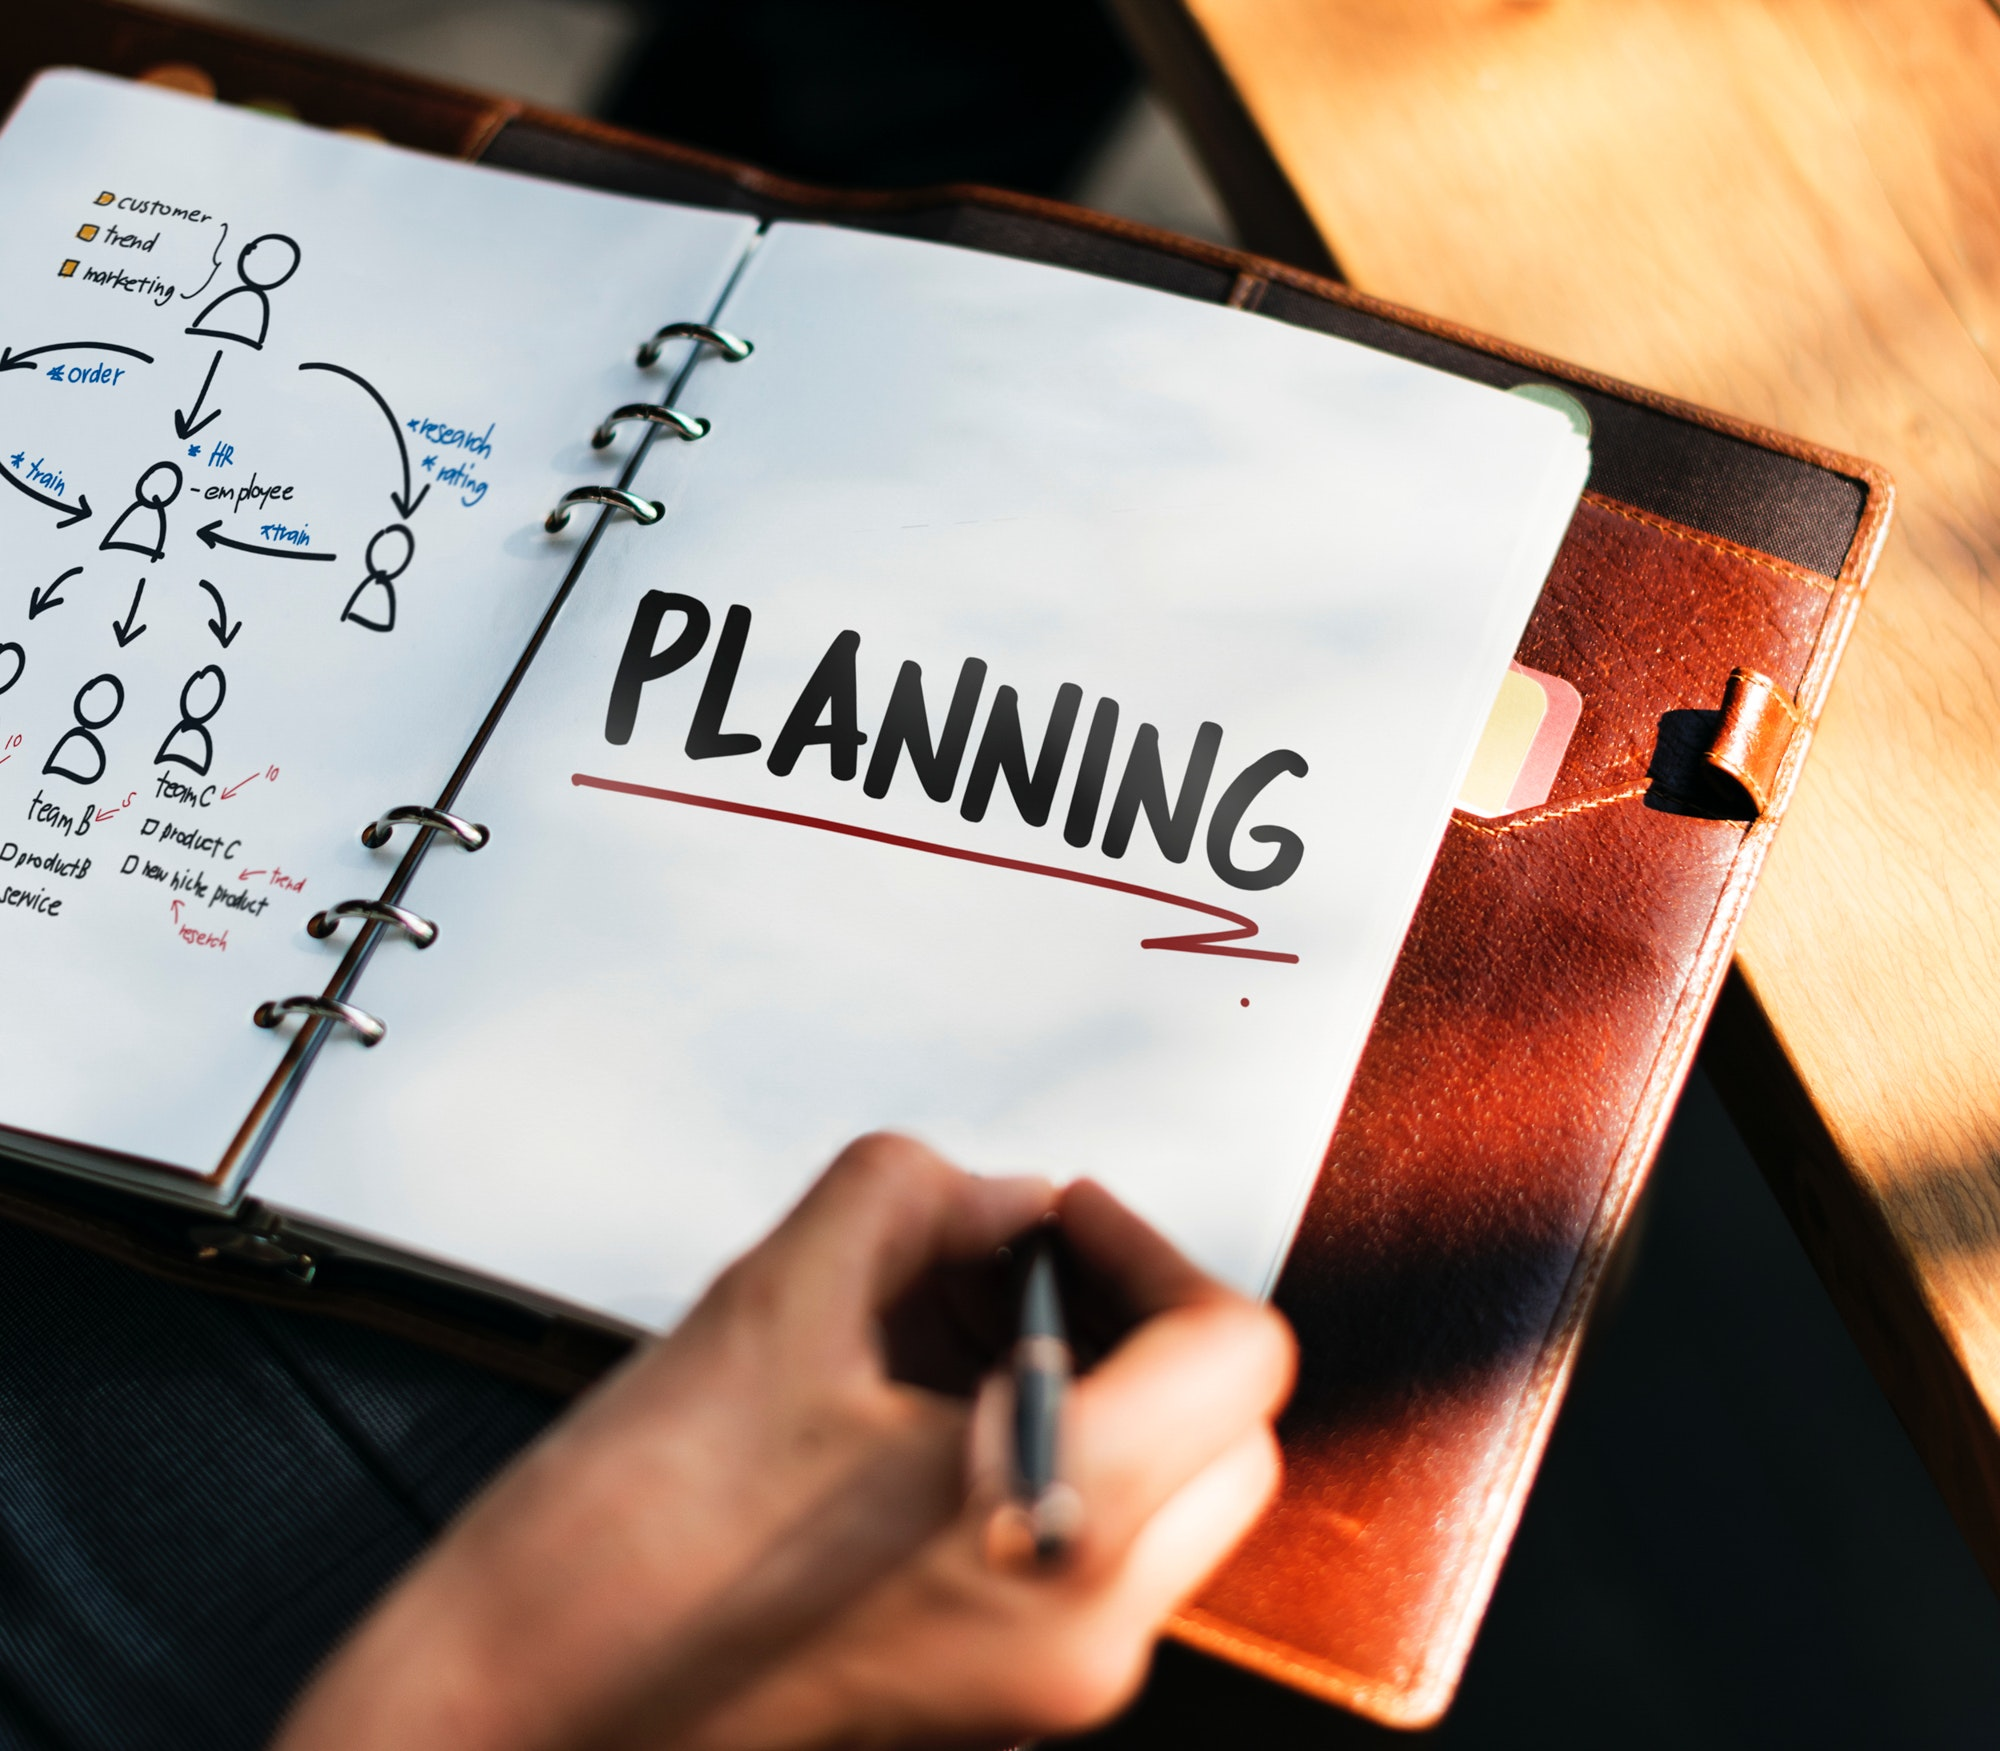 Content Marketing Plan - Arbitrarily creating and posting content is counterproductive. A clear plan is necessary for the best results. You're investing a lot in your digital marketing strategy. Why not get a comprehensive content marketing plan that transforms that investment into paying customers?